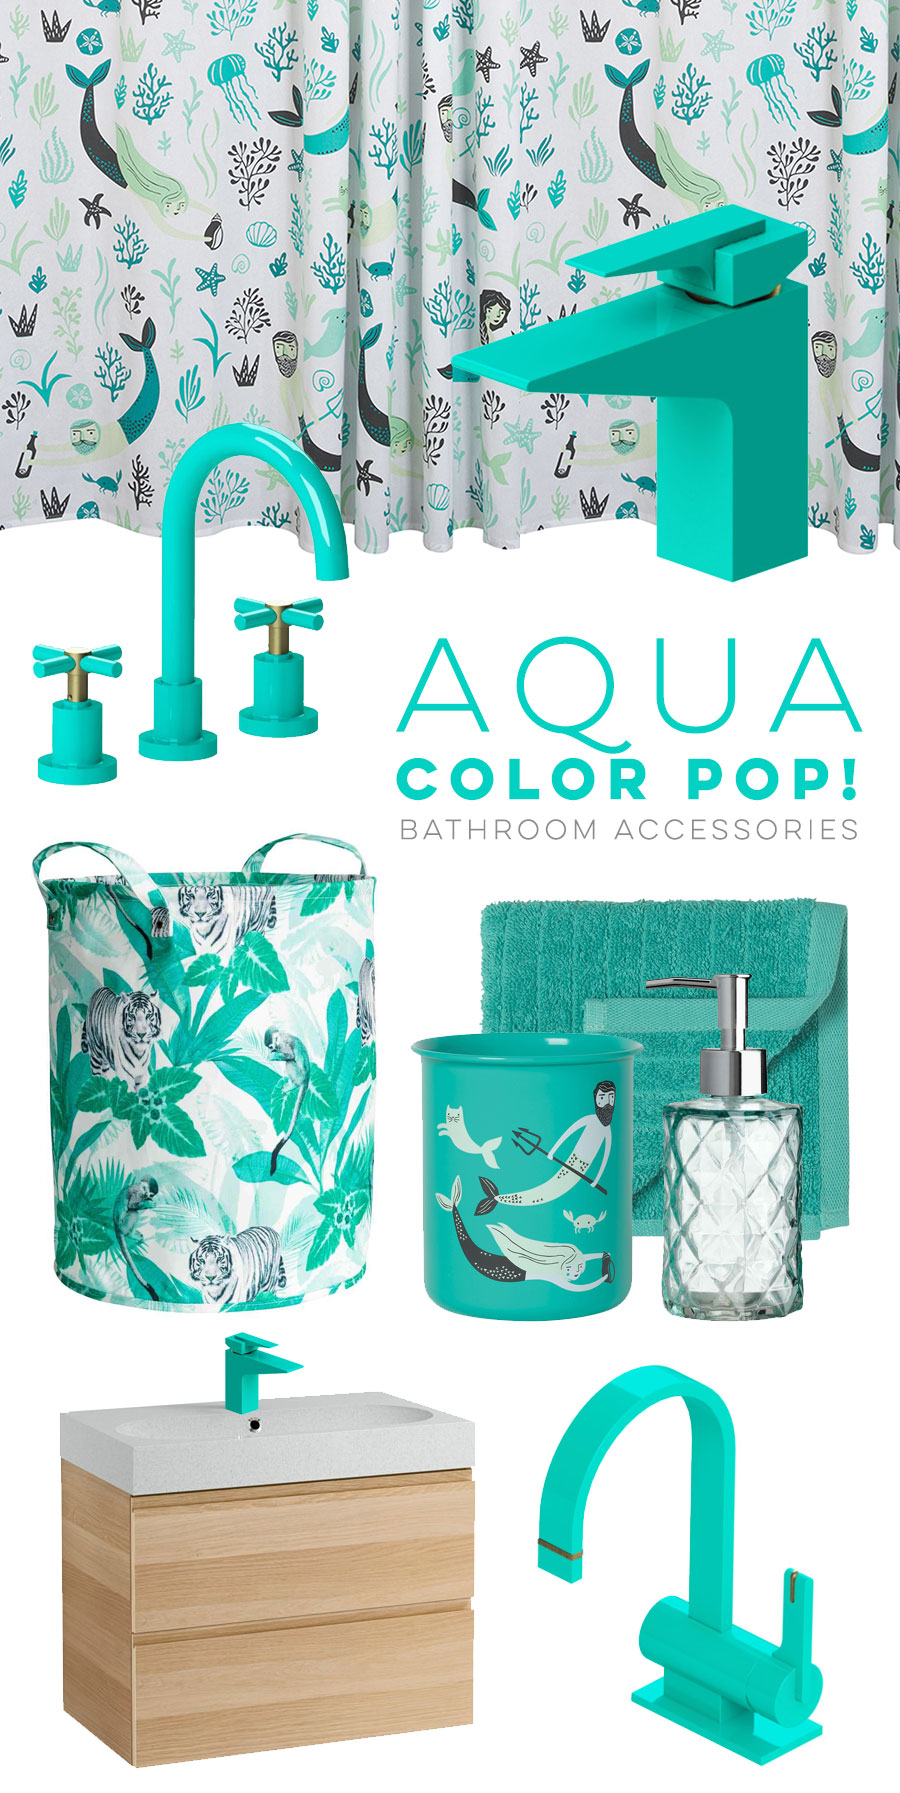 Aqua bathroom accessories visualheart creative studio for Aqua bath accessories